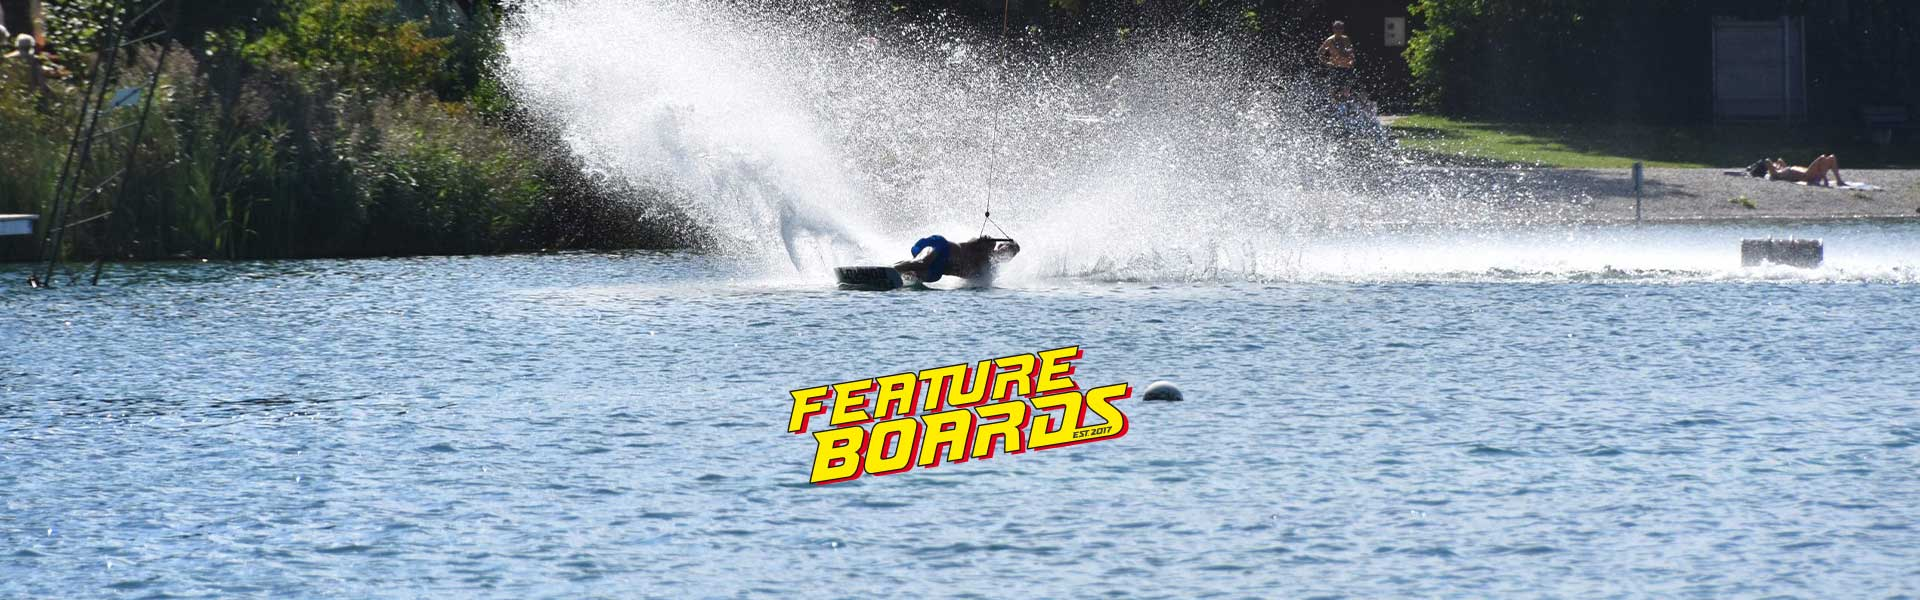 Feature Boards on water